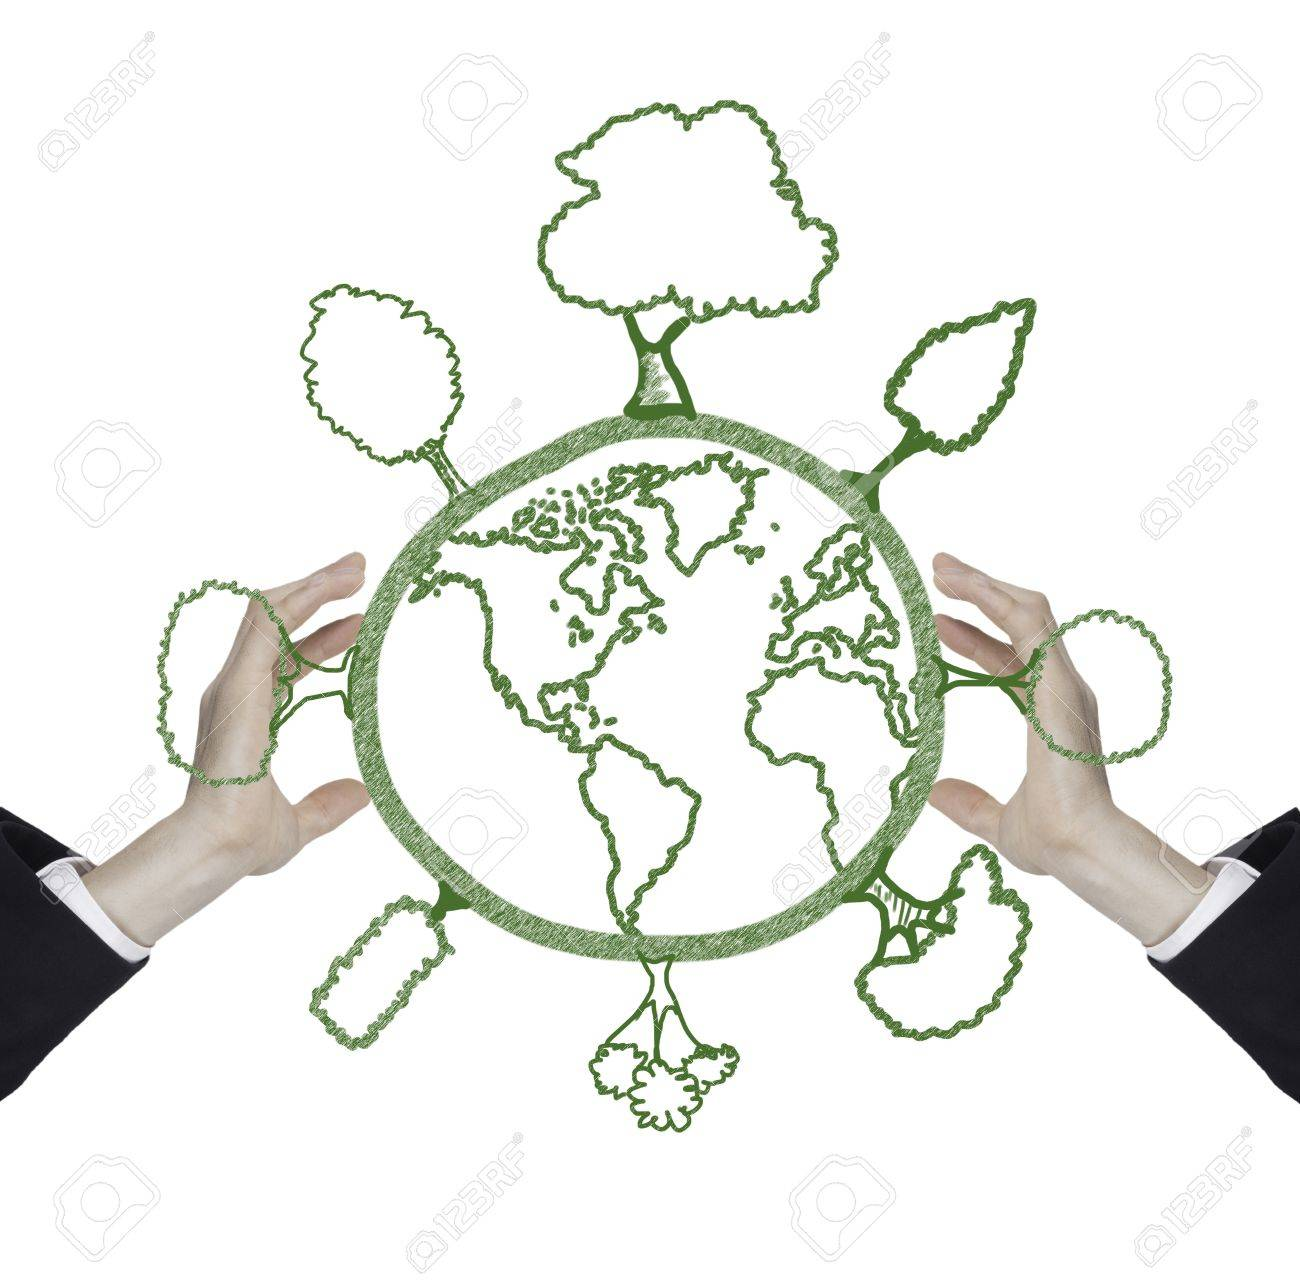 Man With Green World Drawing Global Warming Concept Stock Photo